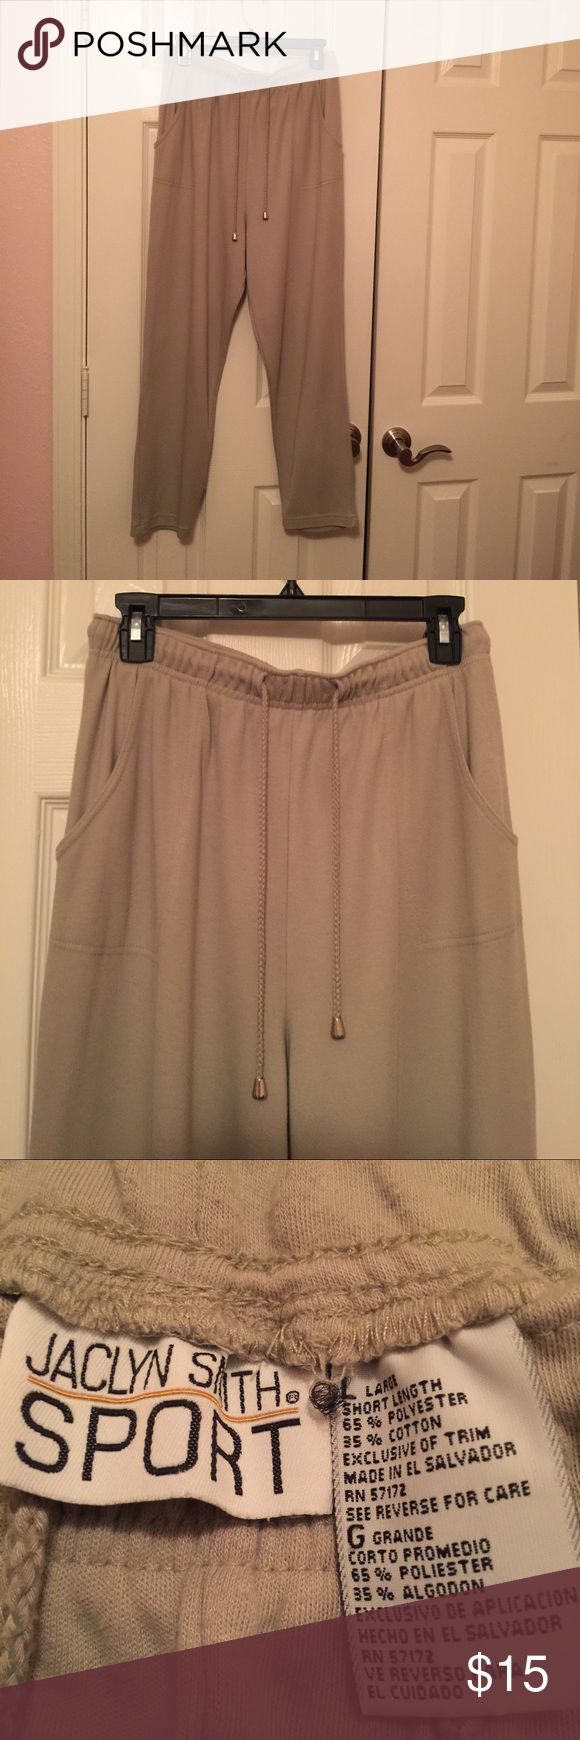 🌼🌼Ladies Pants 🌼🌼sz L/XL Preowned, great condition. Gently used. Short length. Very comfortable. Draw strings to tighten waist. 2 pockets. Does have stretch to the material. Run big. Tag says Sz Large, will also fit extra large. Casual, and wear to work. Color is lime green JACKLYN SMITH SPORT Pants Trousers